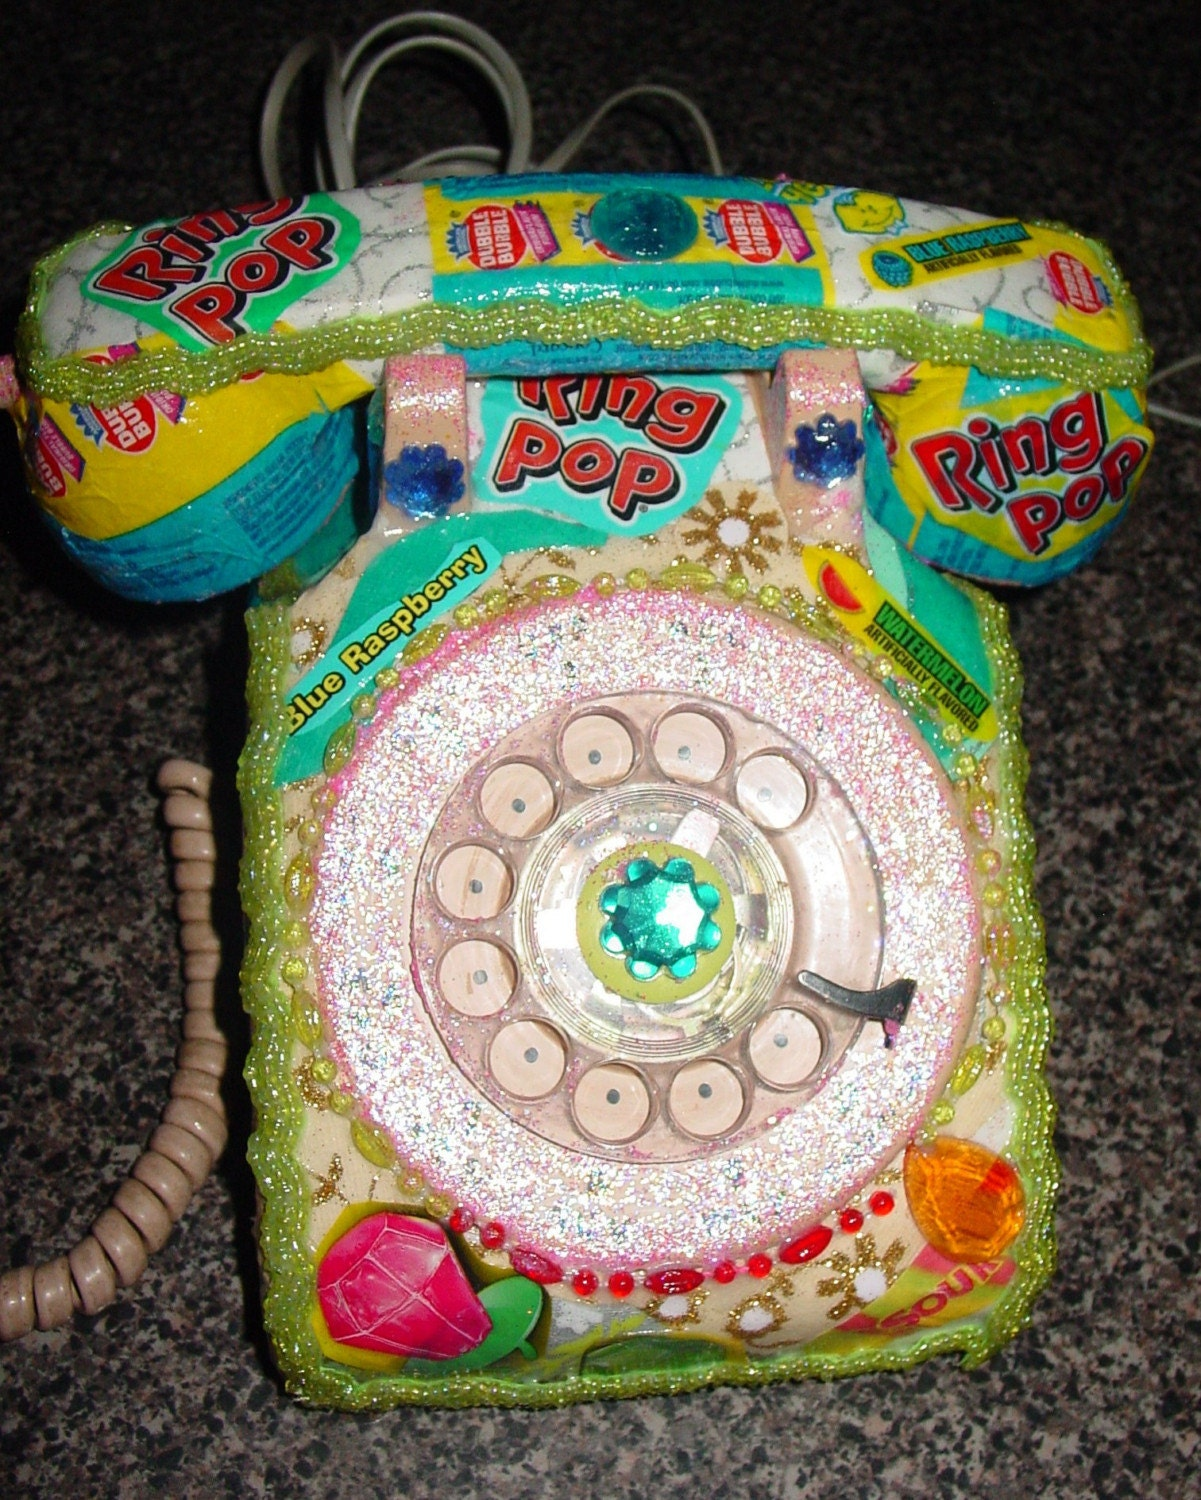 recycled vintage dial phone by C.Reinke RING POP candy wrappers.Kitsch at its best reserved for Emily